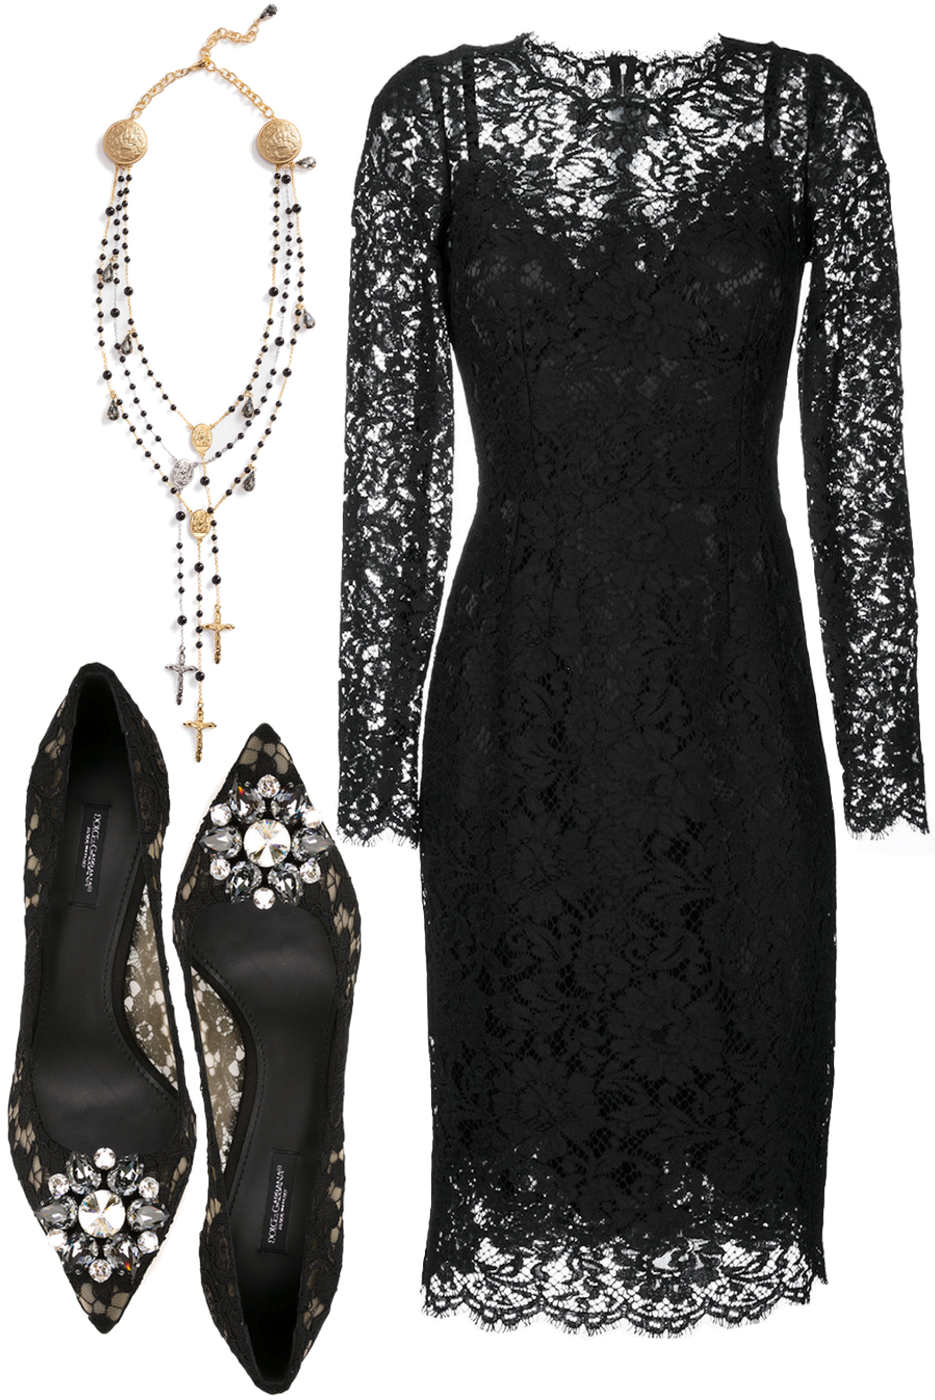 DOLCE & GABBANA CORDONETTO LACE SHEATH DRESS